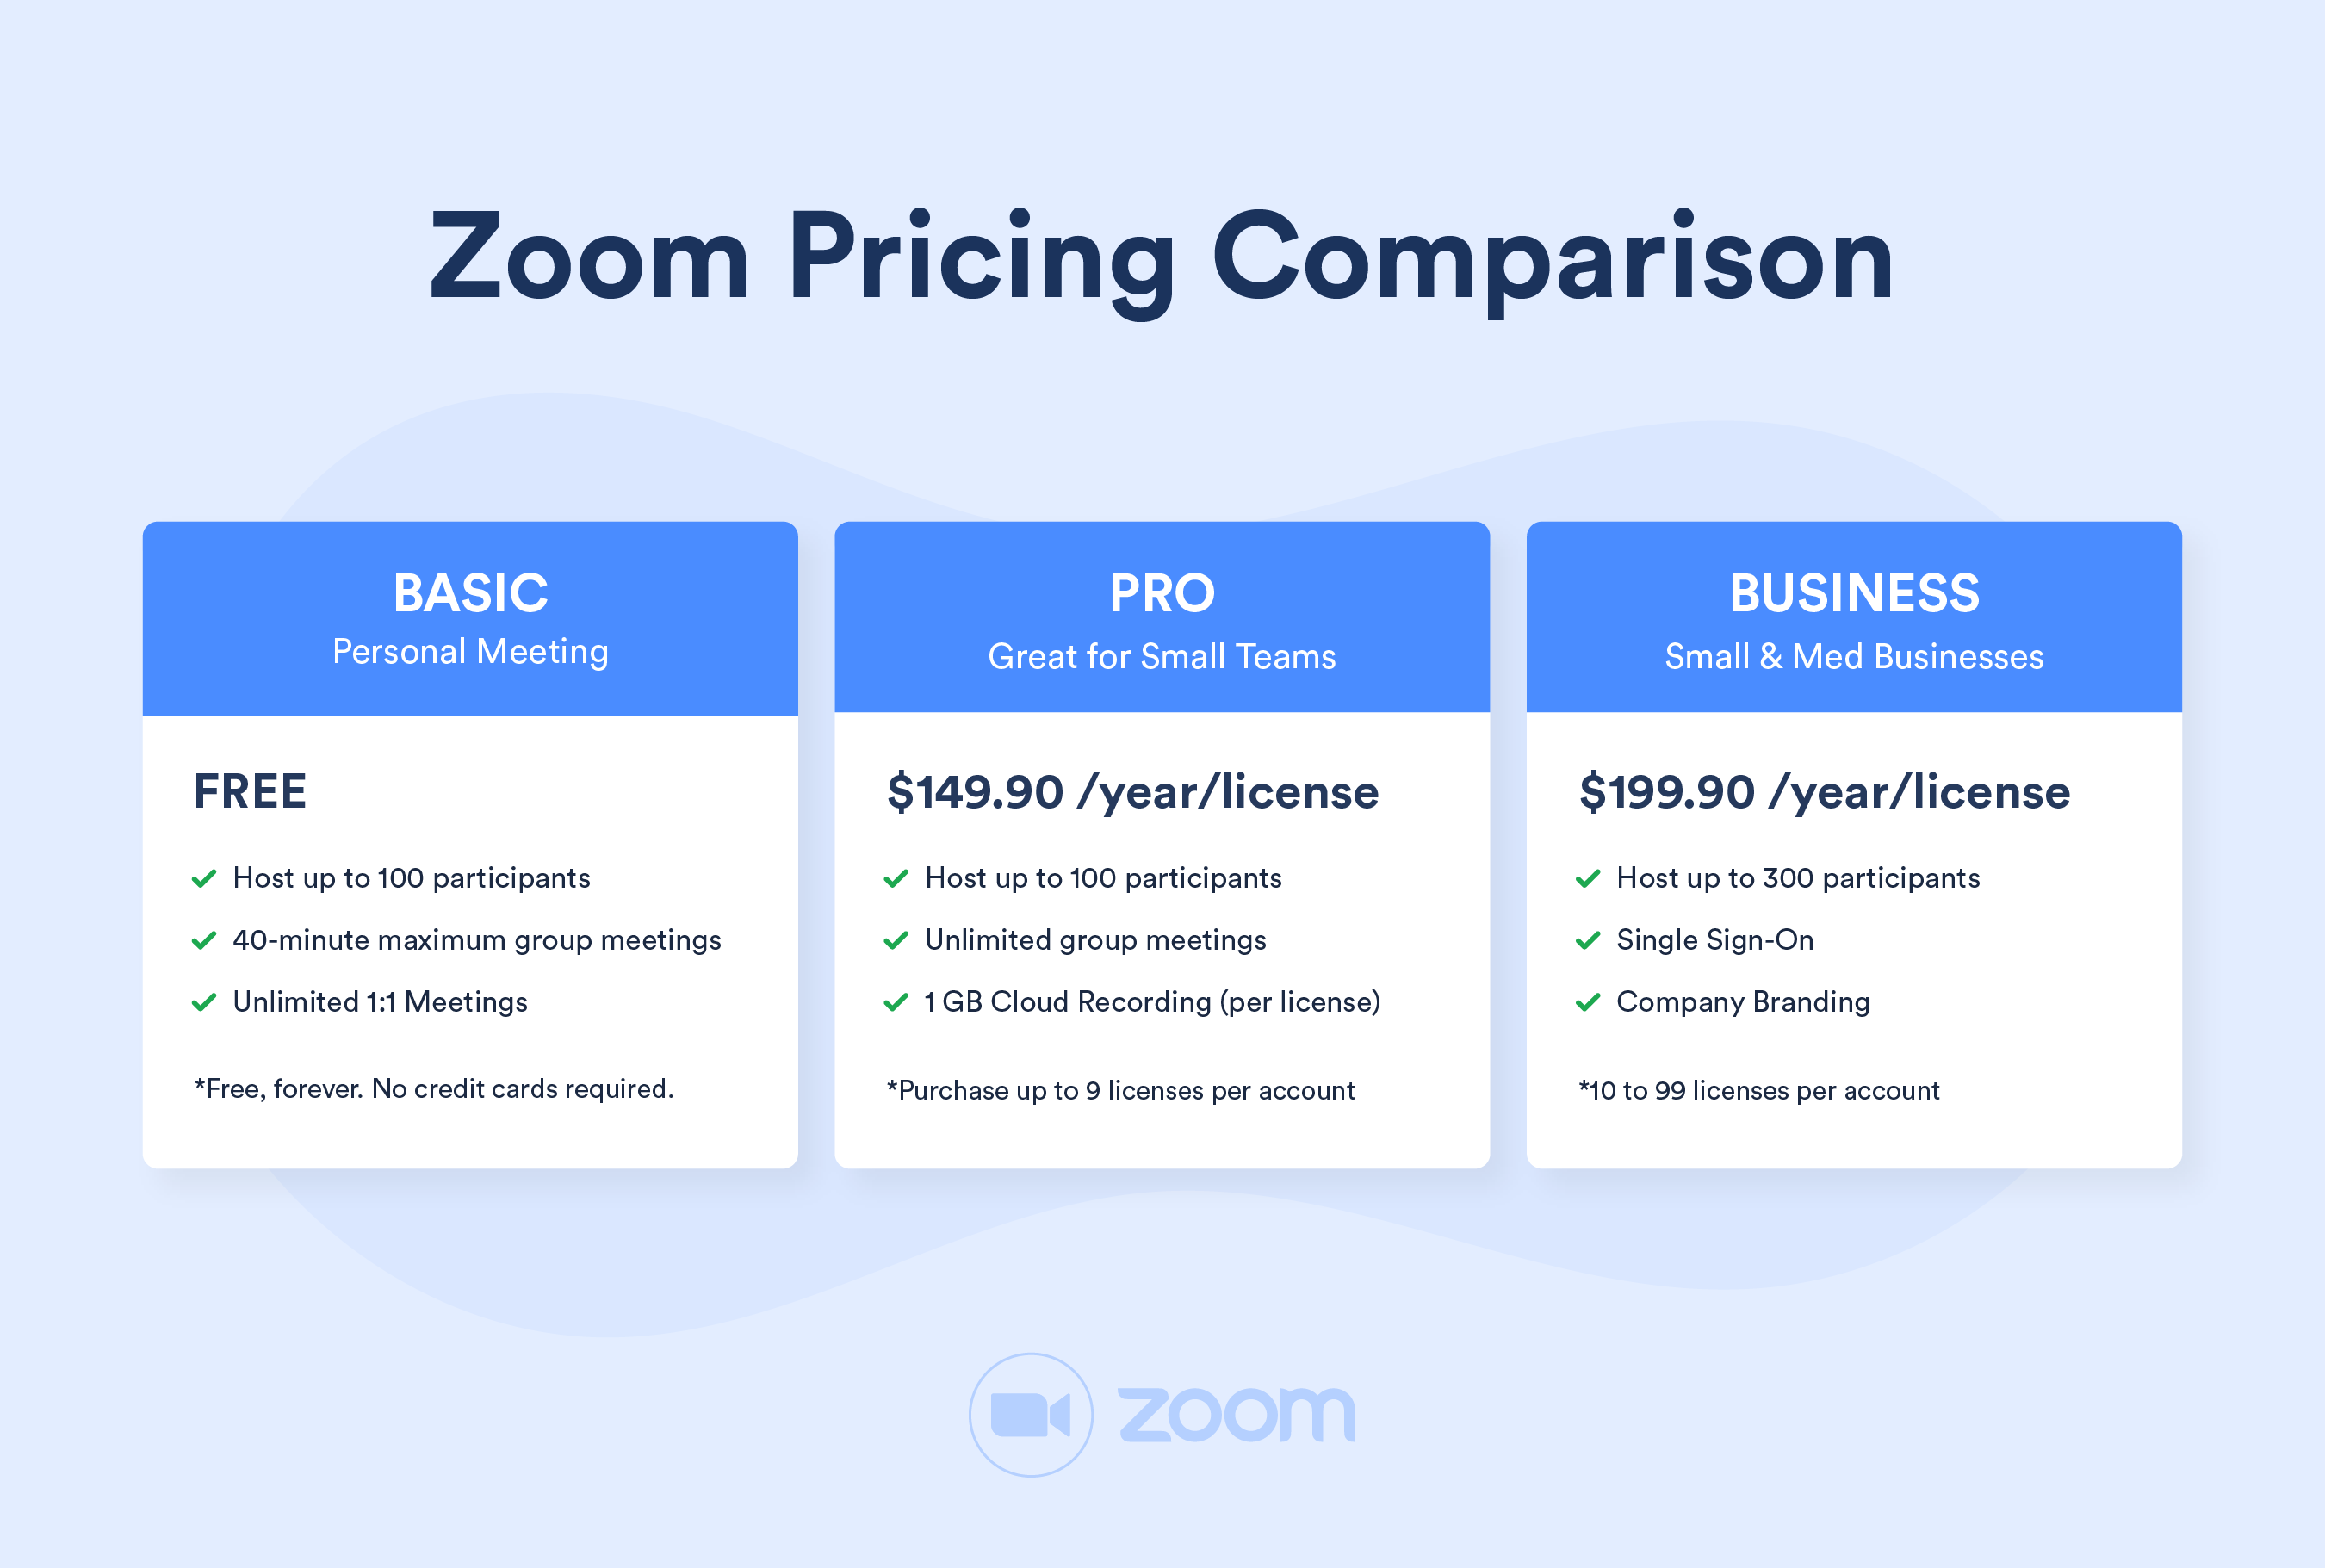 Zoom Pricing Comparison for Basic, Pro and Business